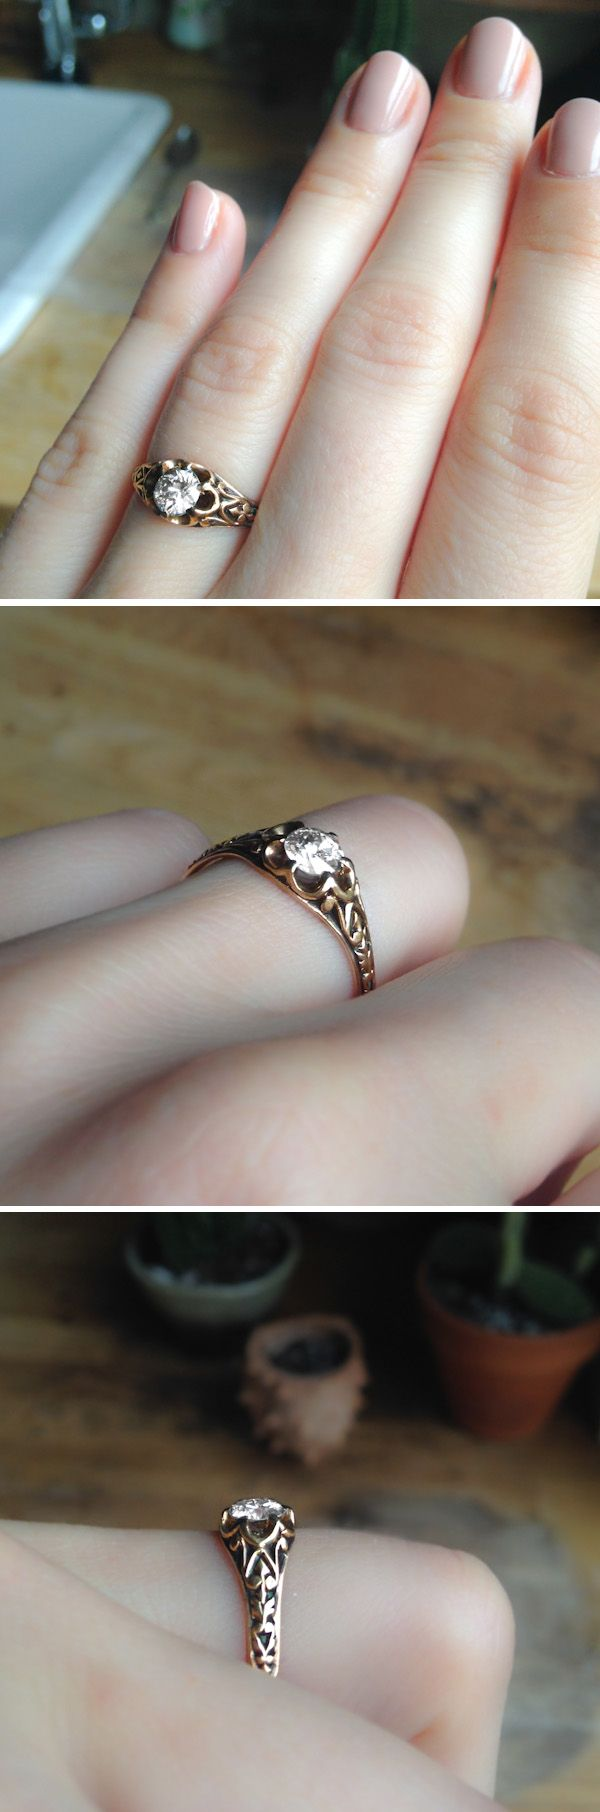 Classic Antique Victorian Buttercup Gold Engagement Ring Simple But  Beautiful!